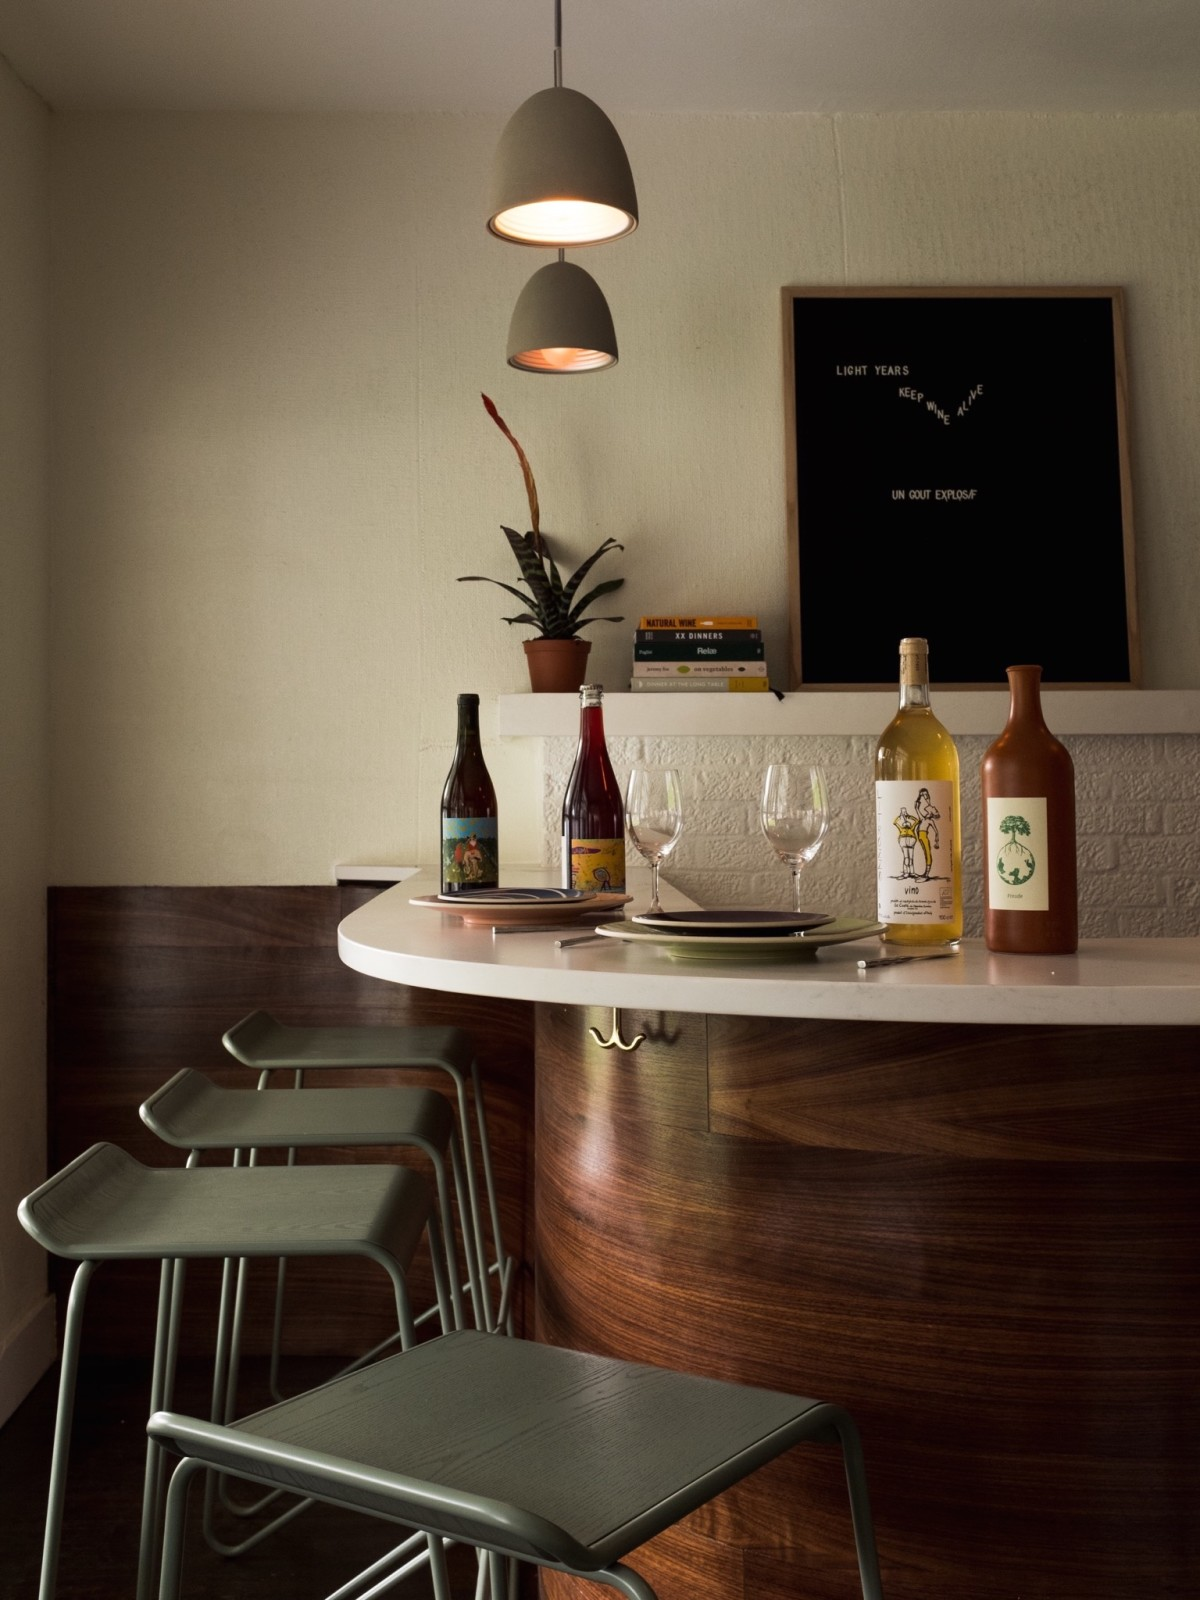 Light Years wine bar interior